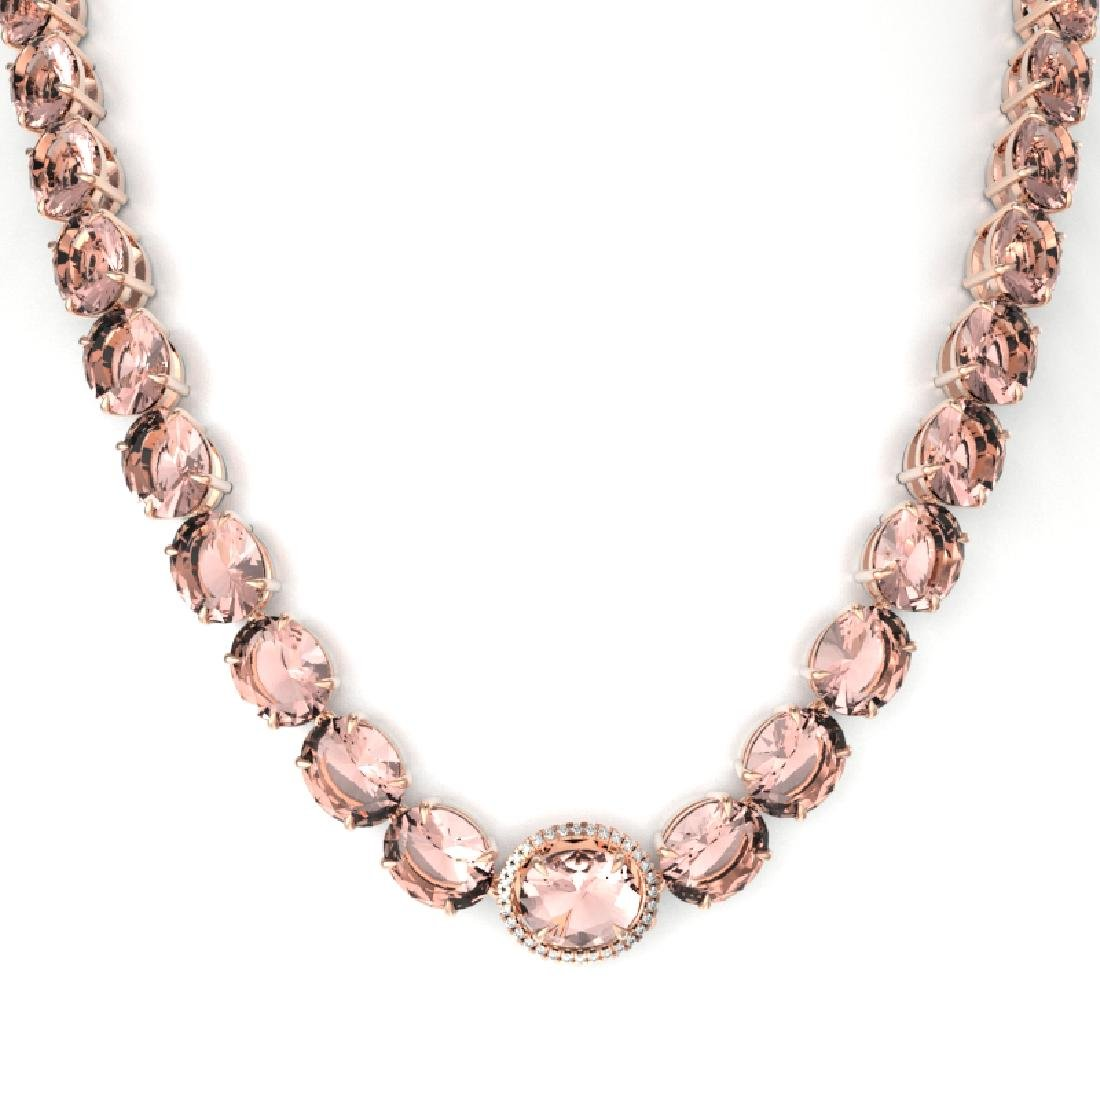 148 CTW Morganite & VS/SI Diamond Pave Necklace 14K - 2